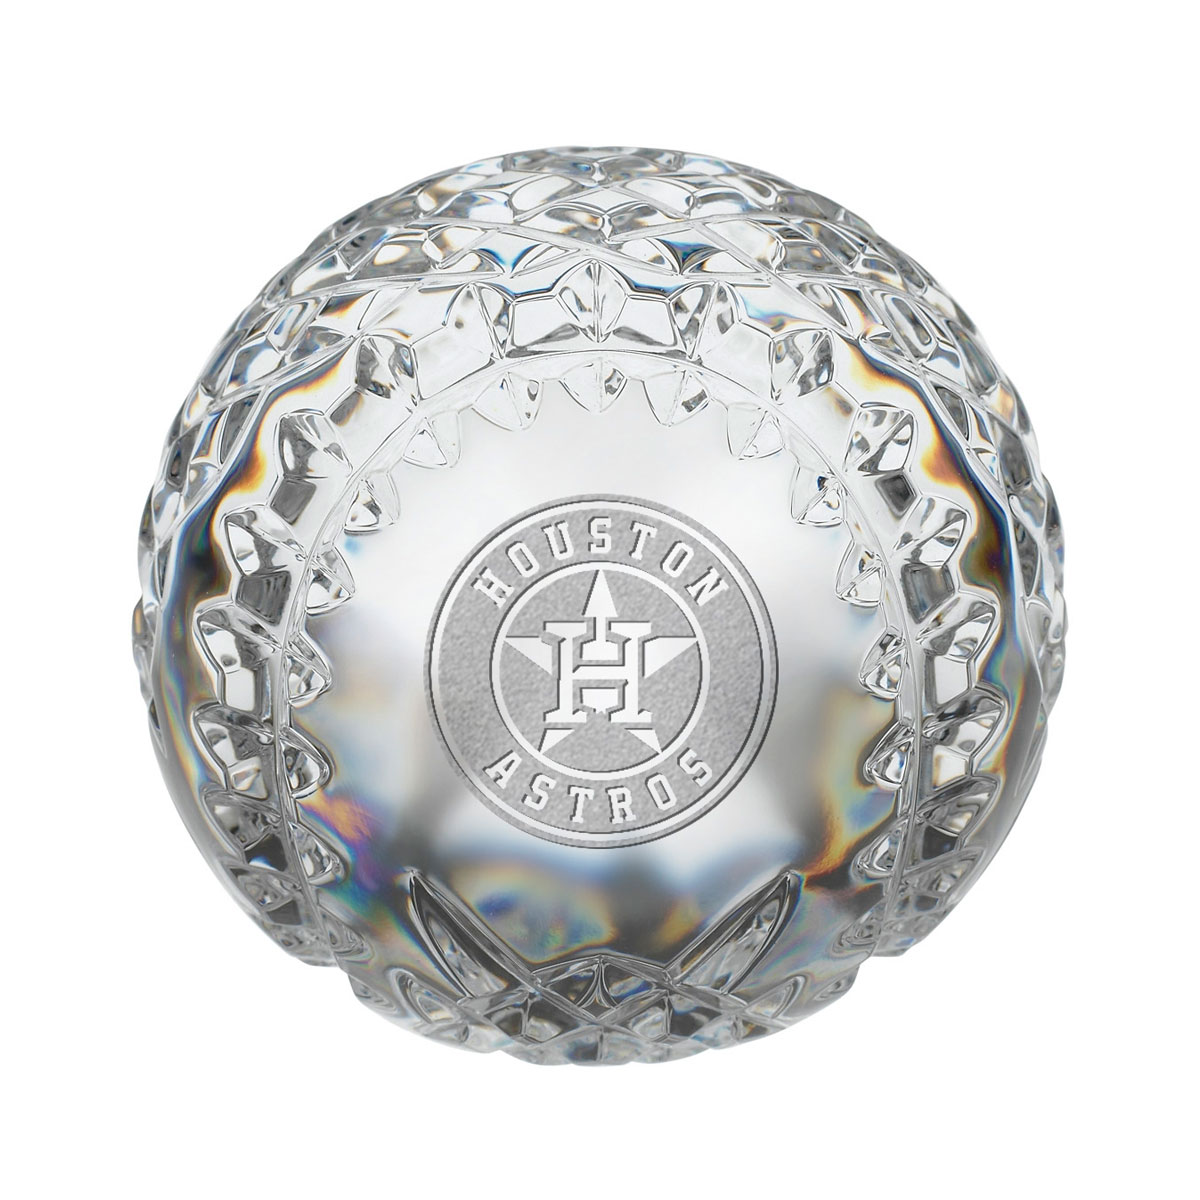 Waterford MLB Houston Astros Crystal Baseball Paperweight